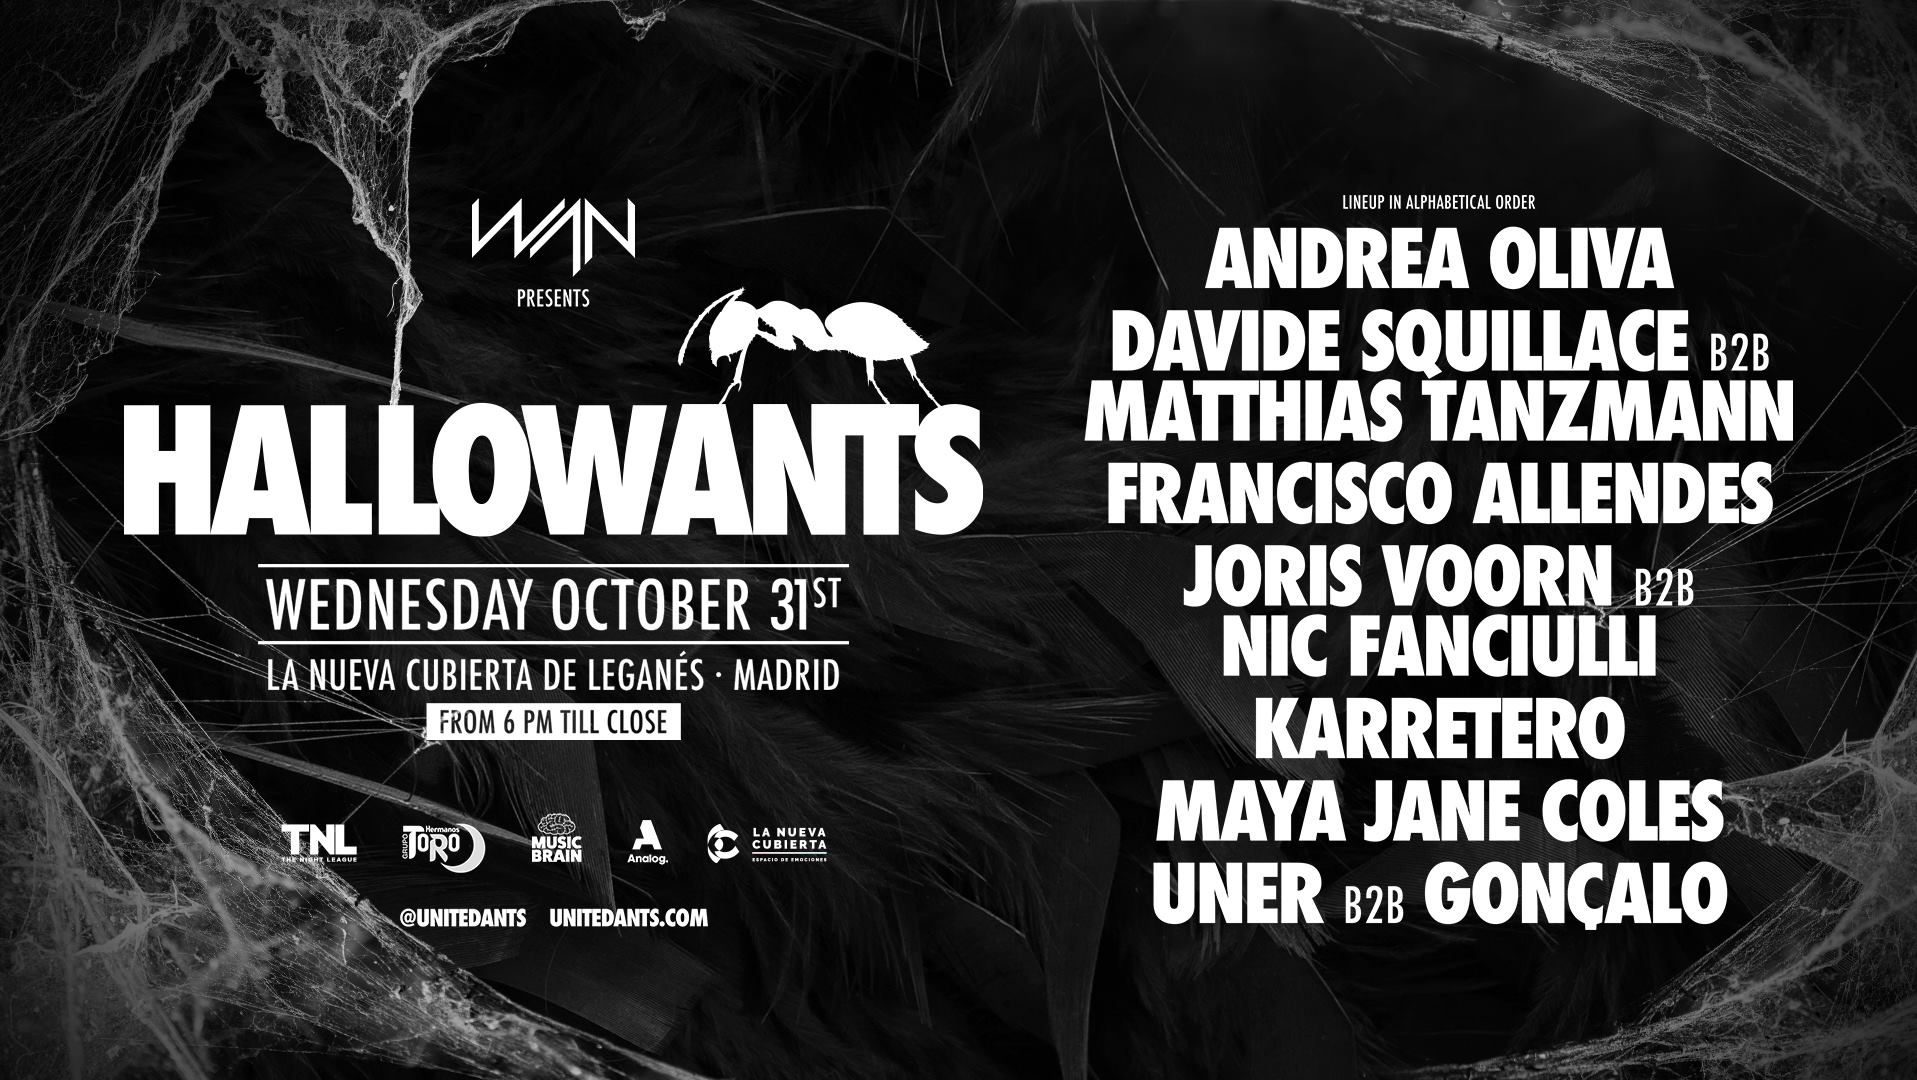 ANTS ANNOUNCE SPECIAL 'HALLOWANTS' PARTY